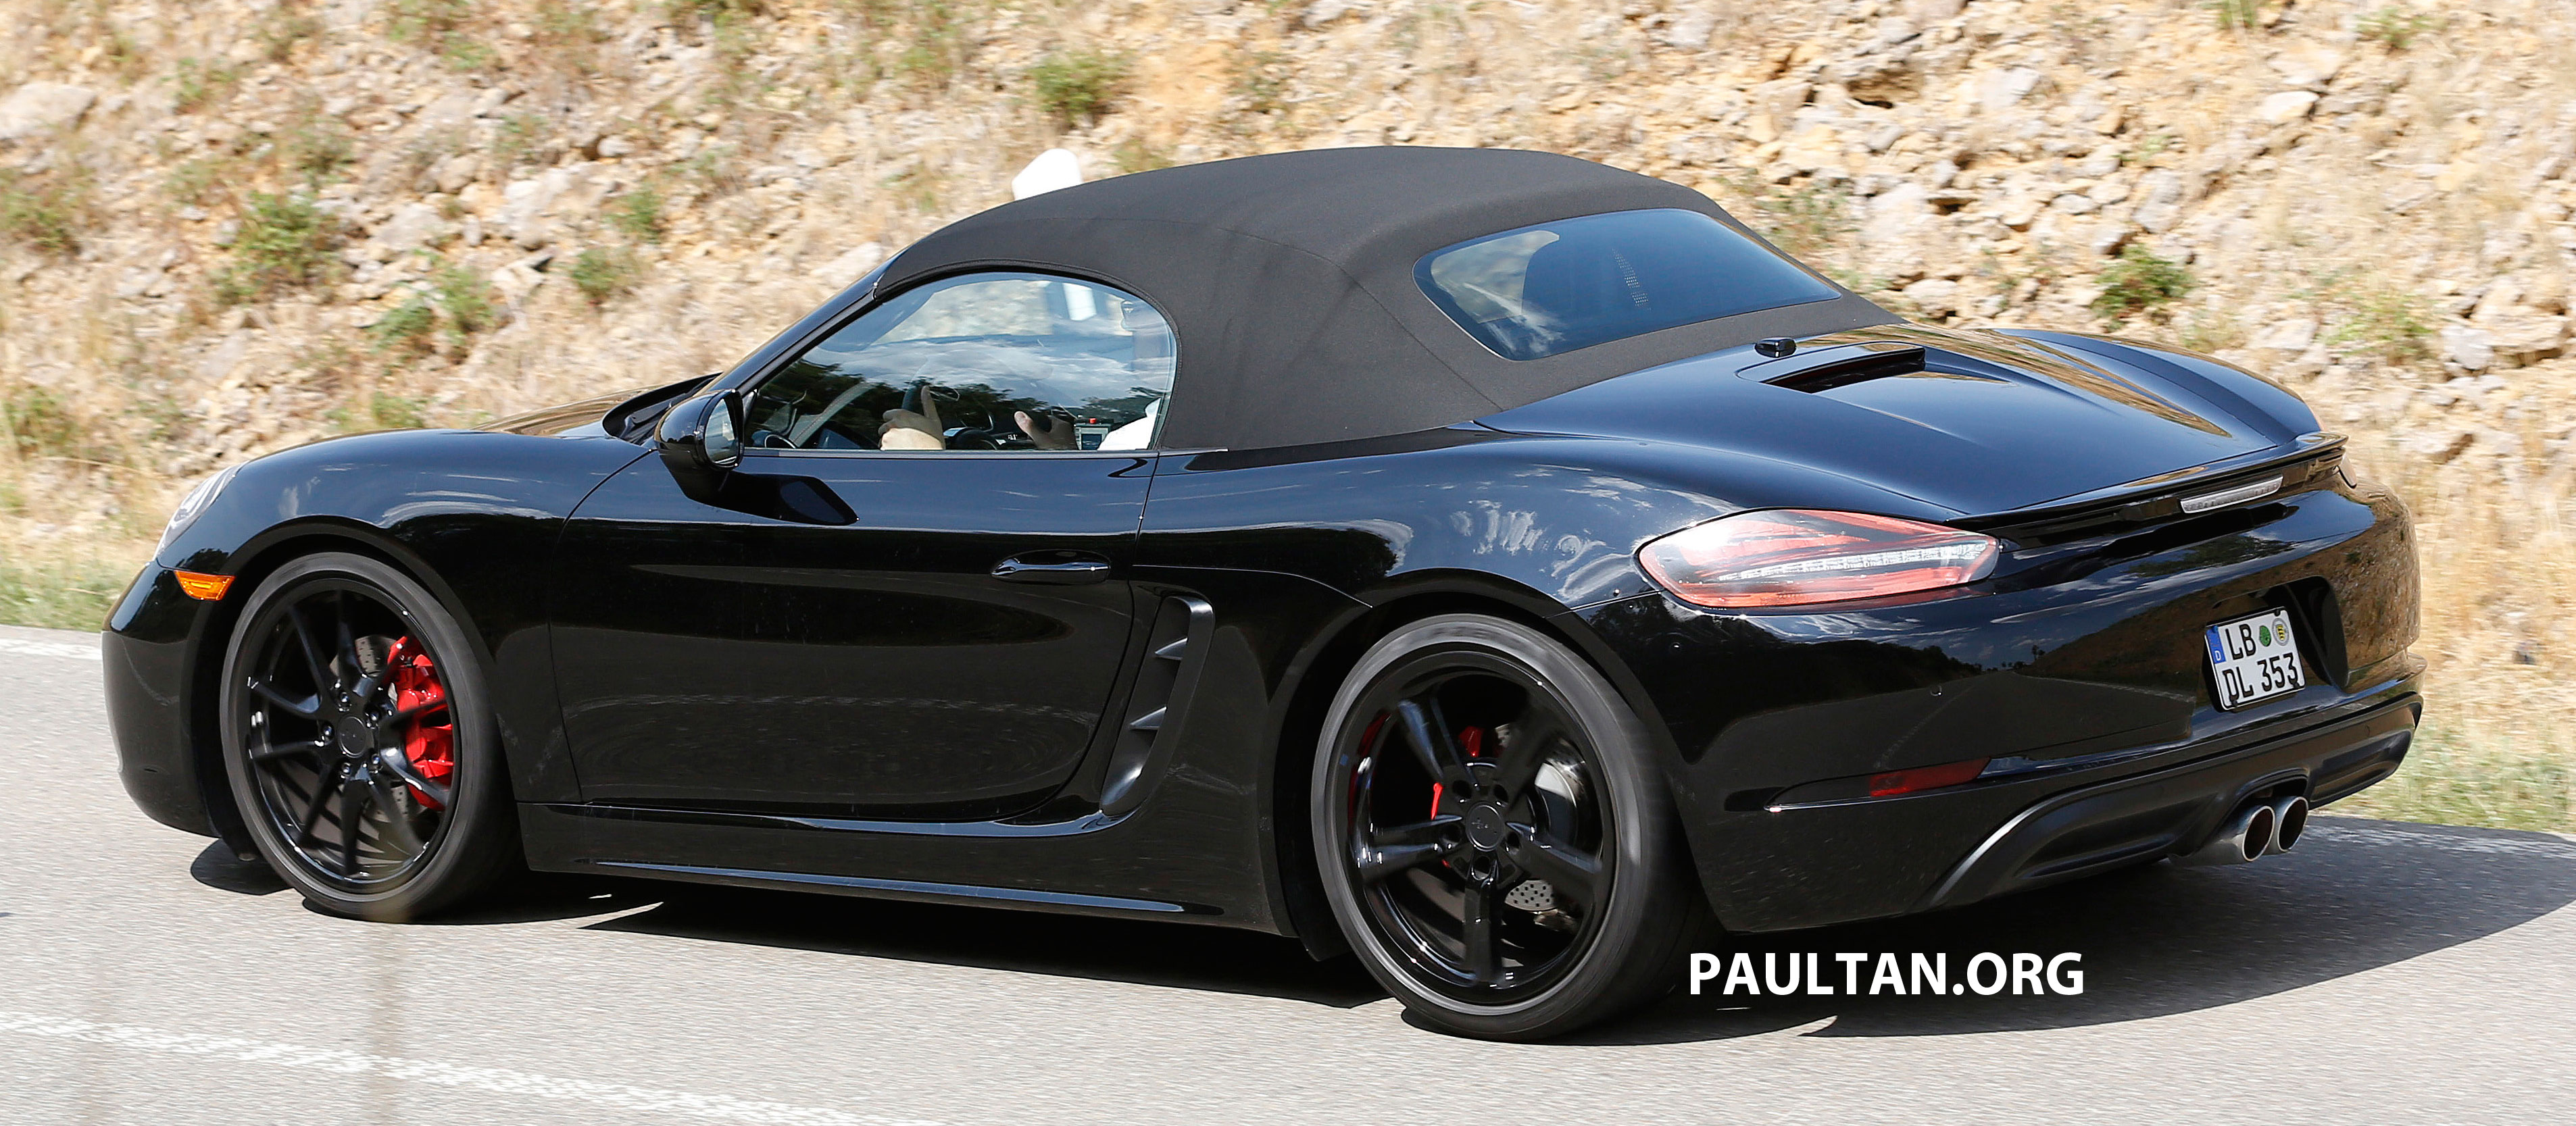 Spied 2016 Porsche Boxster Facelift Undisguised Paul Tan Image 365166